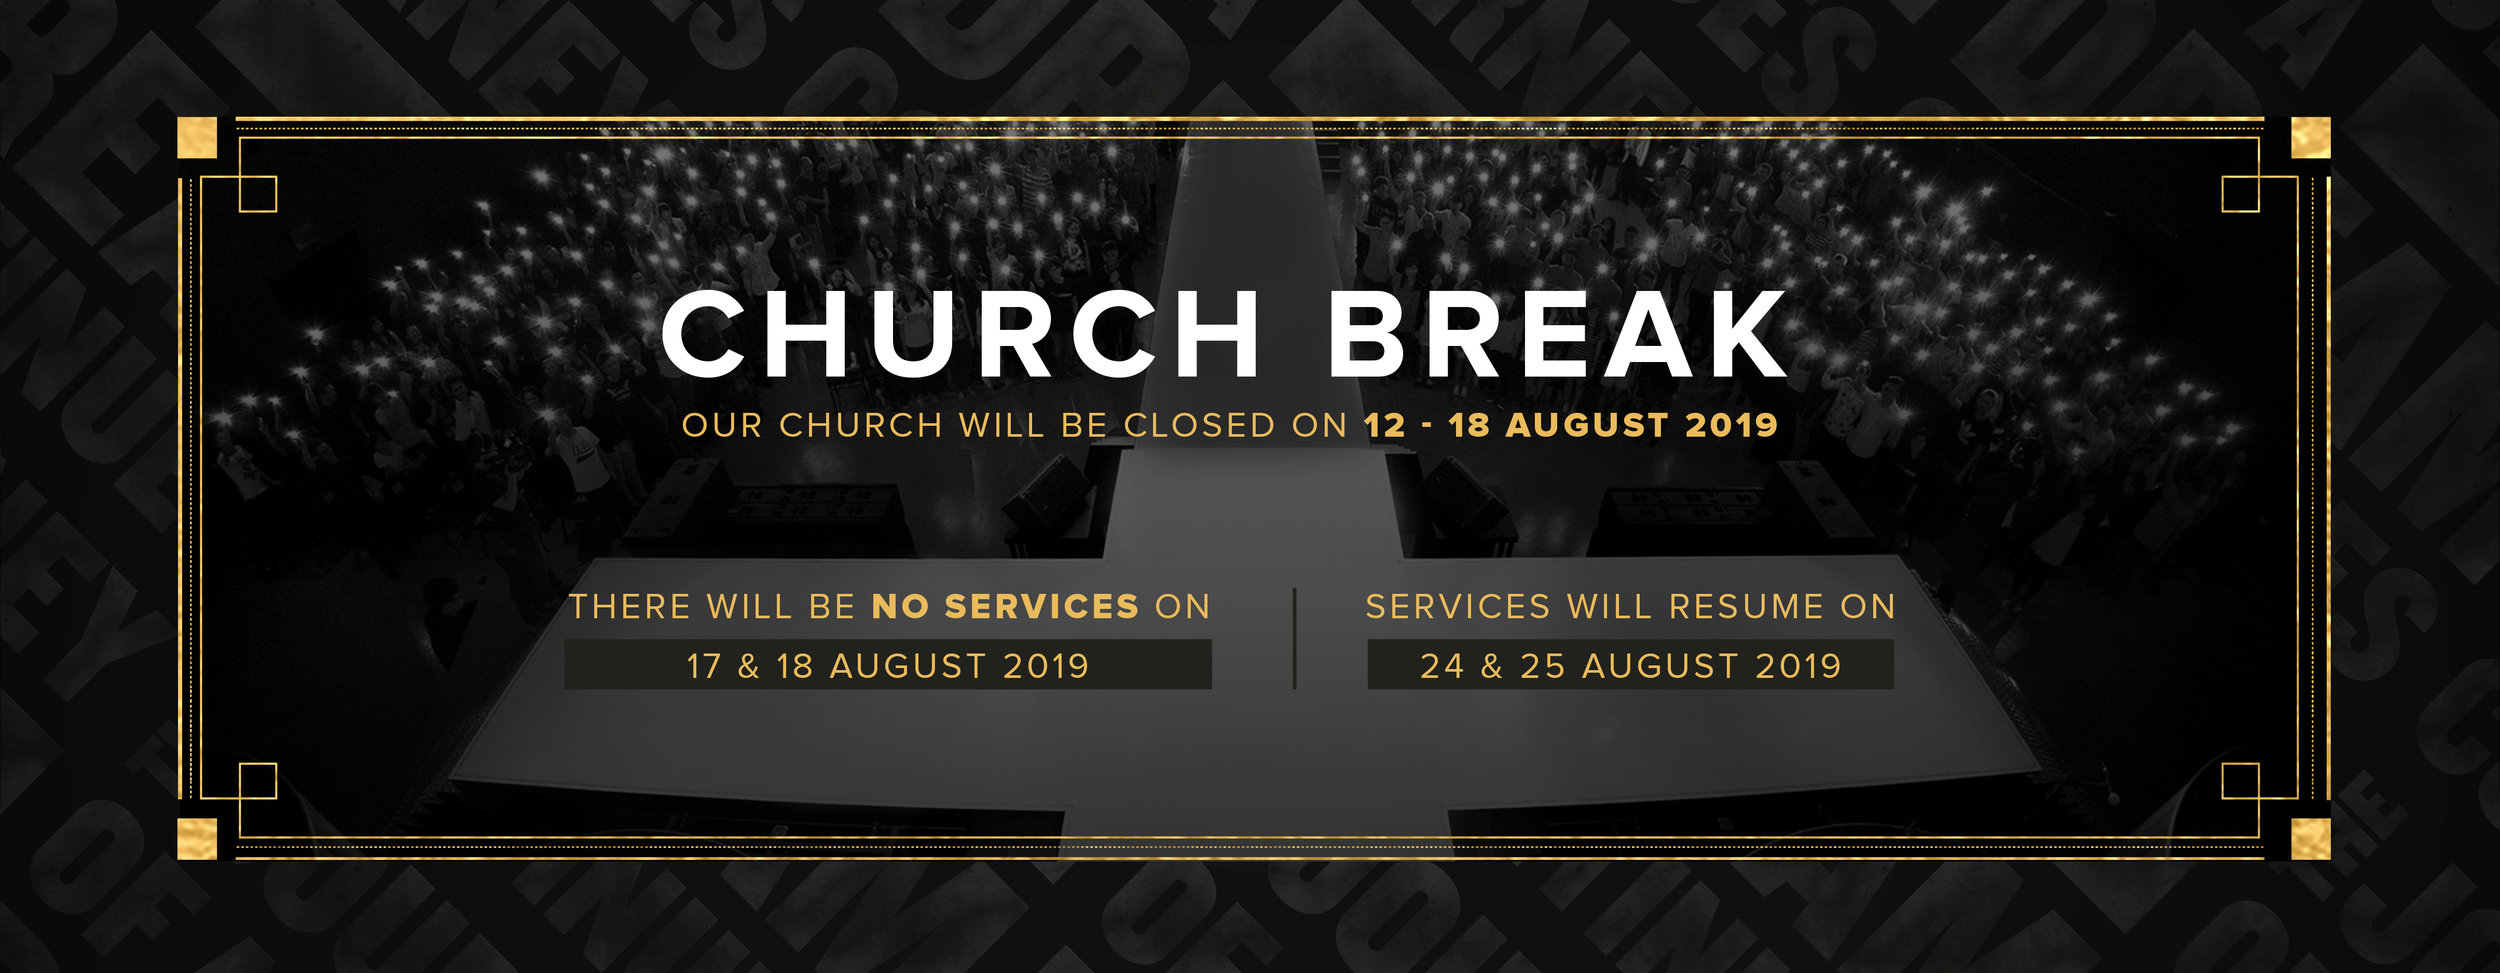 20th Anni - Church Break -1156 x450-HD.jpg